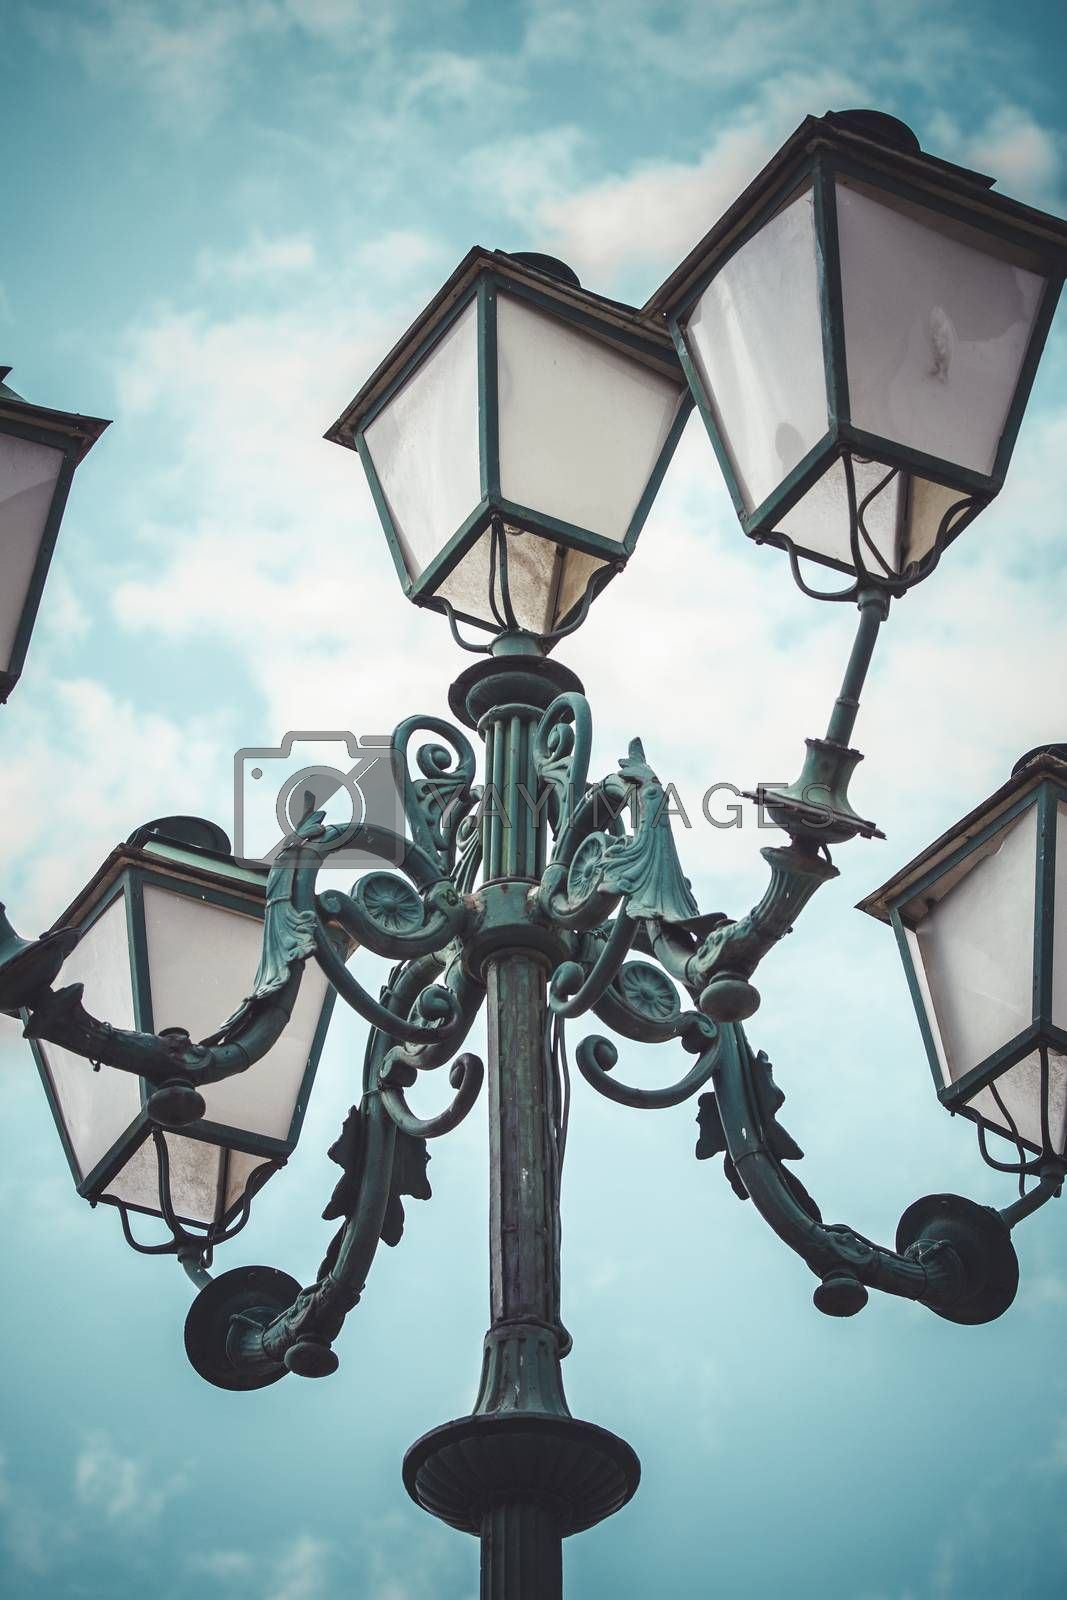 romantic, traditional street lamp with decorative metal flourishes